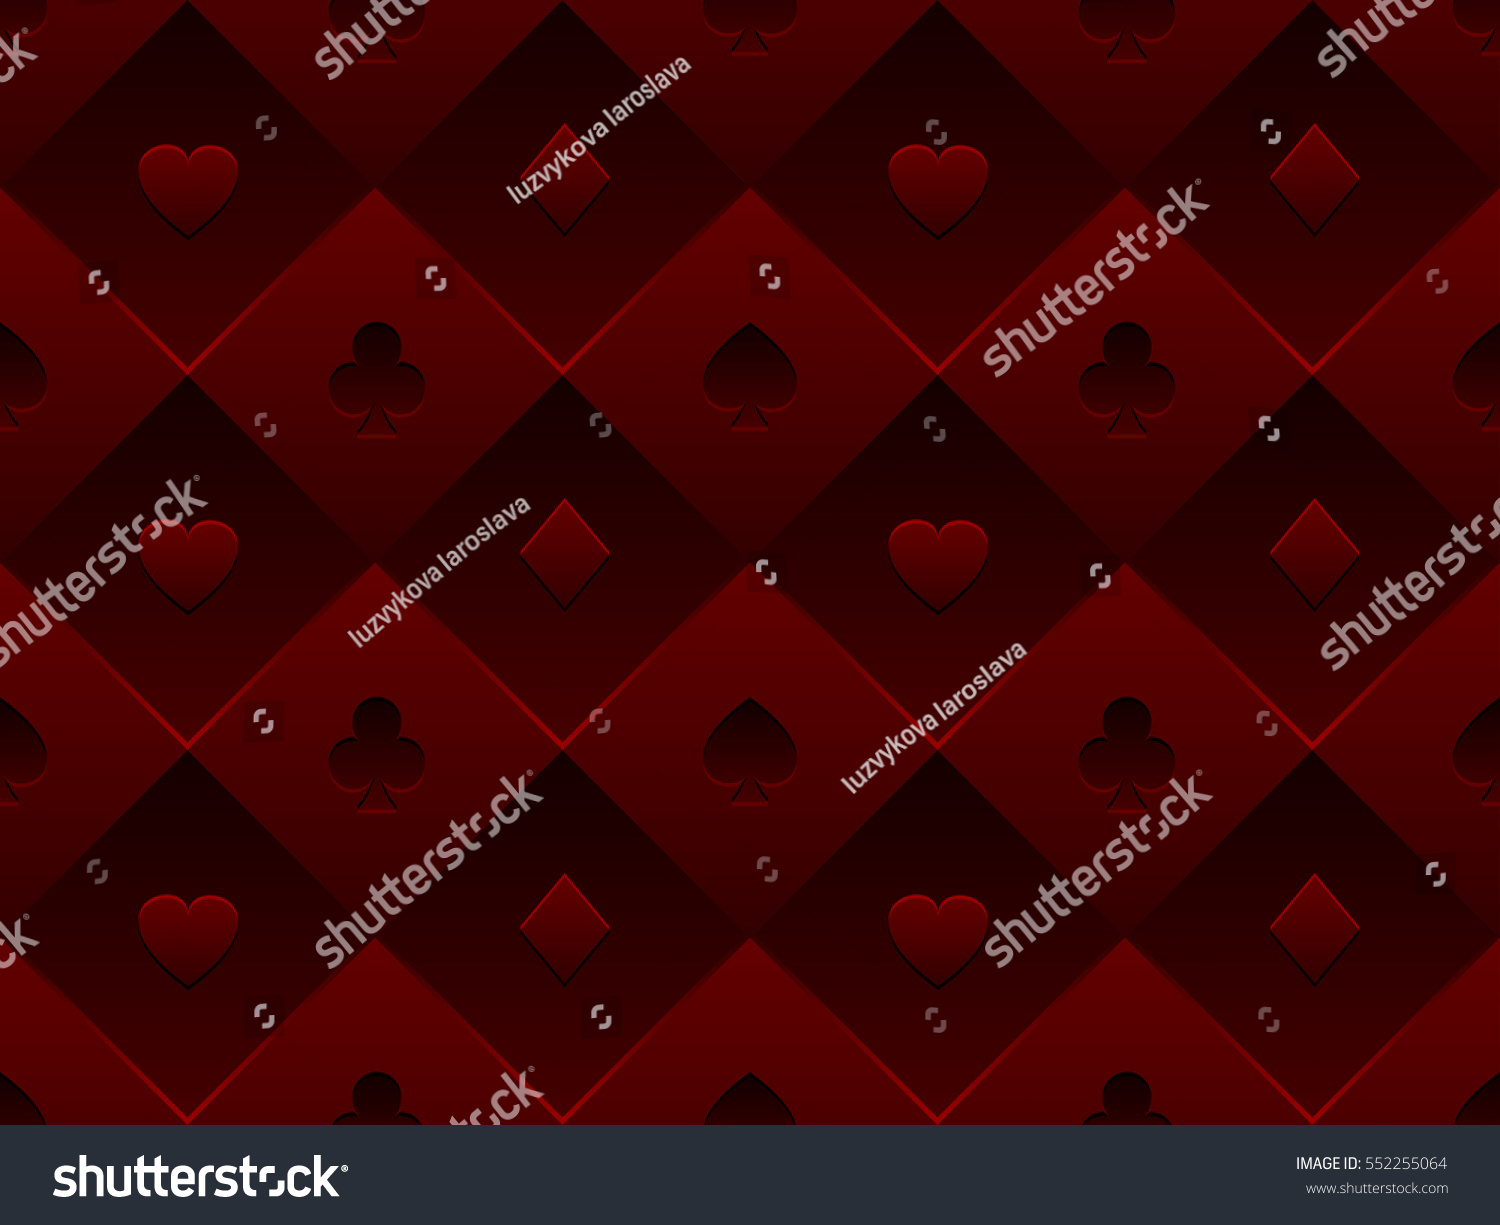 Poker table background - Red Seamless Pattern Fabric Poker Table Minimalistic Casino Vector 3d Background With Texture Composed From